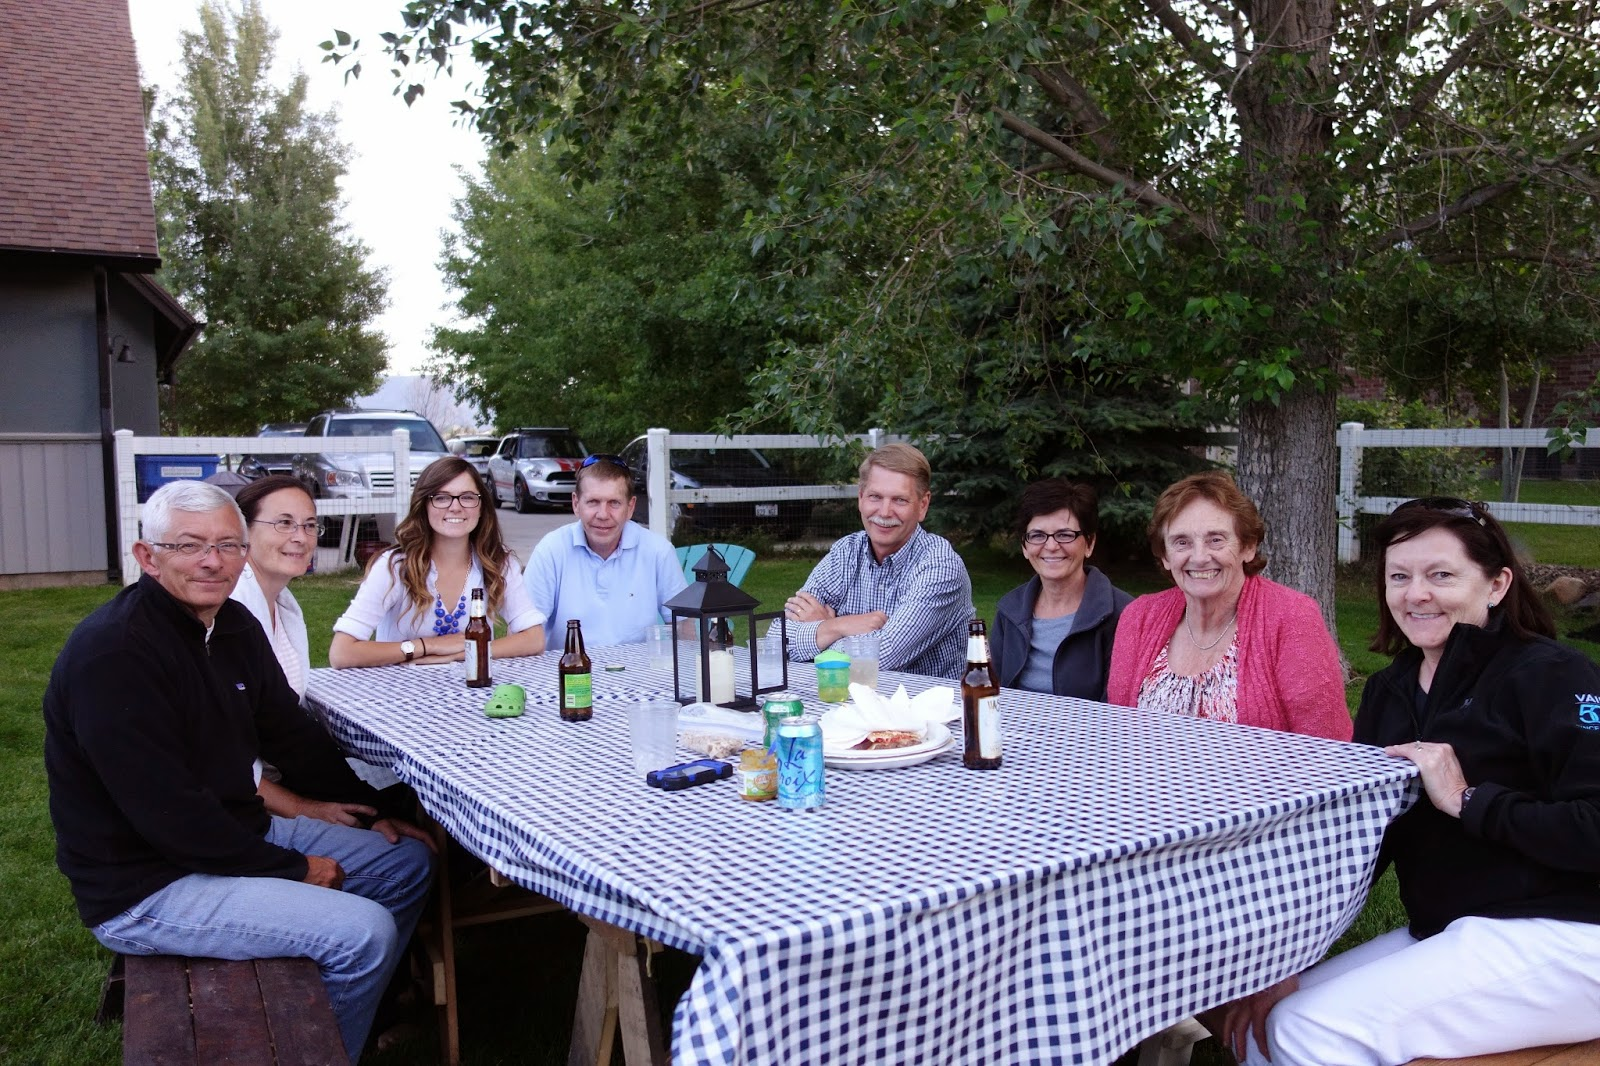 Big Brother Backyard Bbq : Too many guests to name them all, but there are a few key ones from